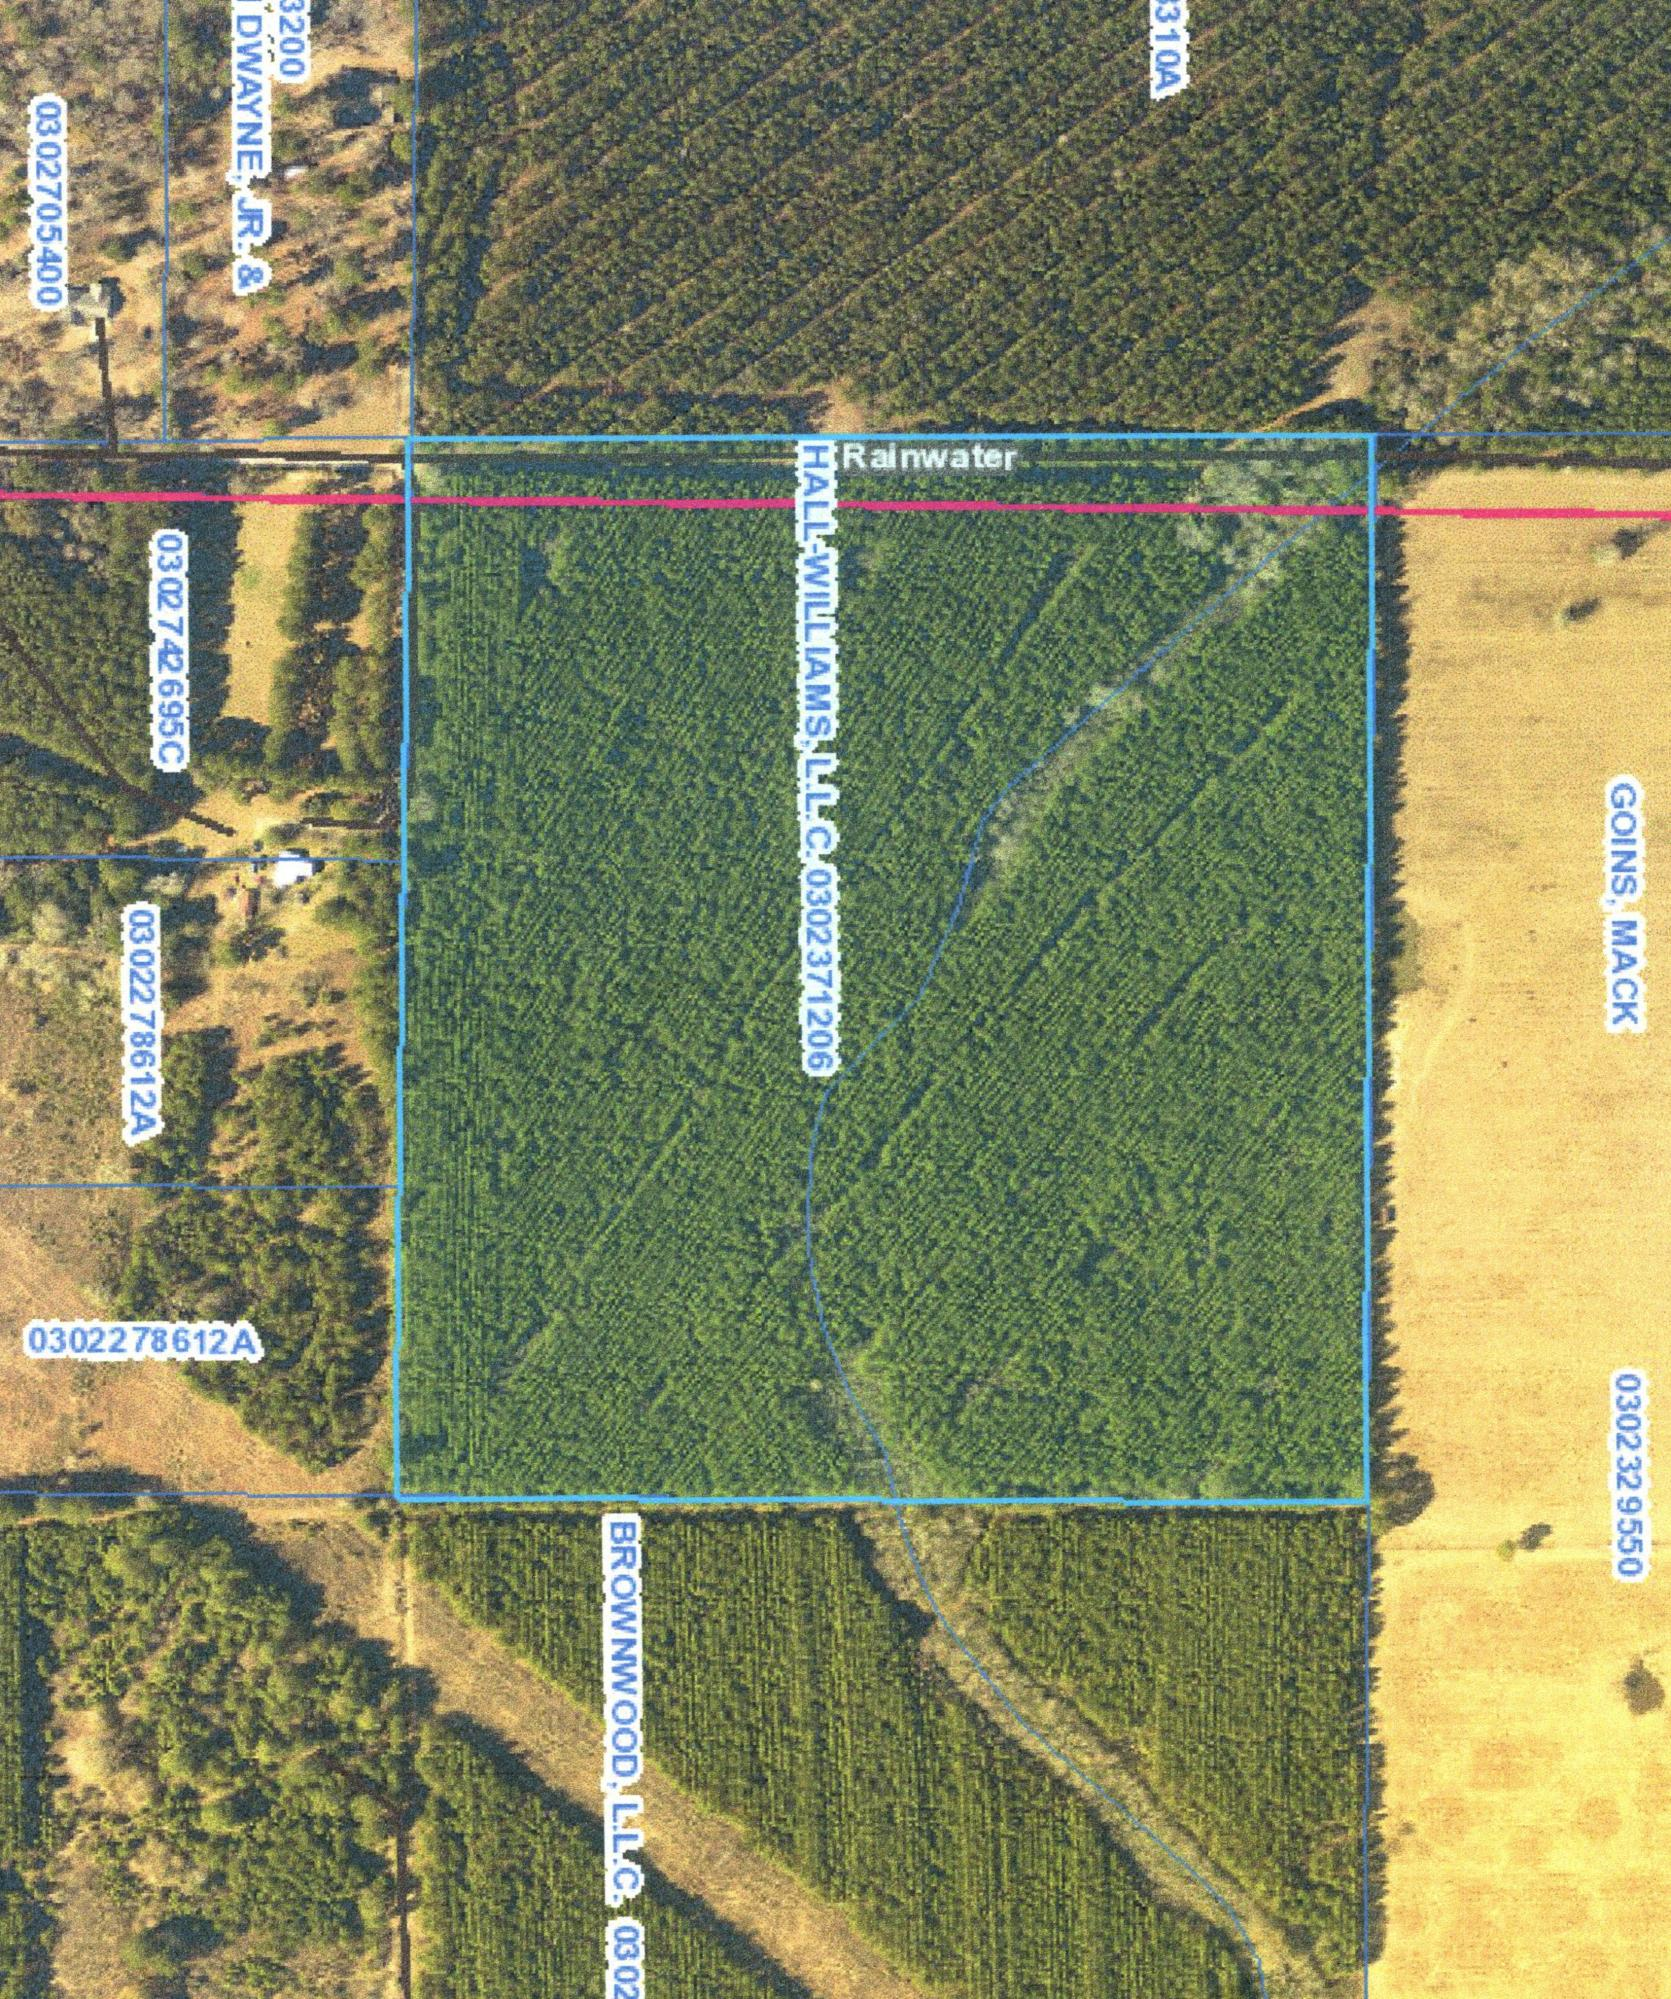 DeRidder land for sale,  TBD RAINWATER RD, DeRidder LA - $175,000